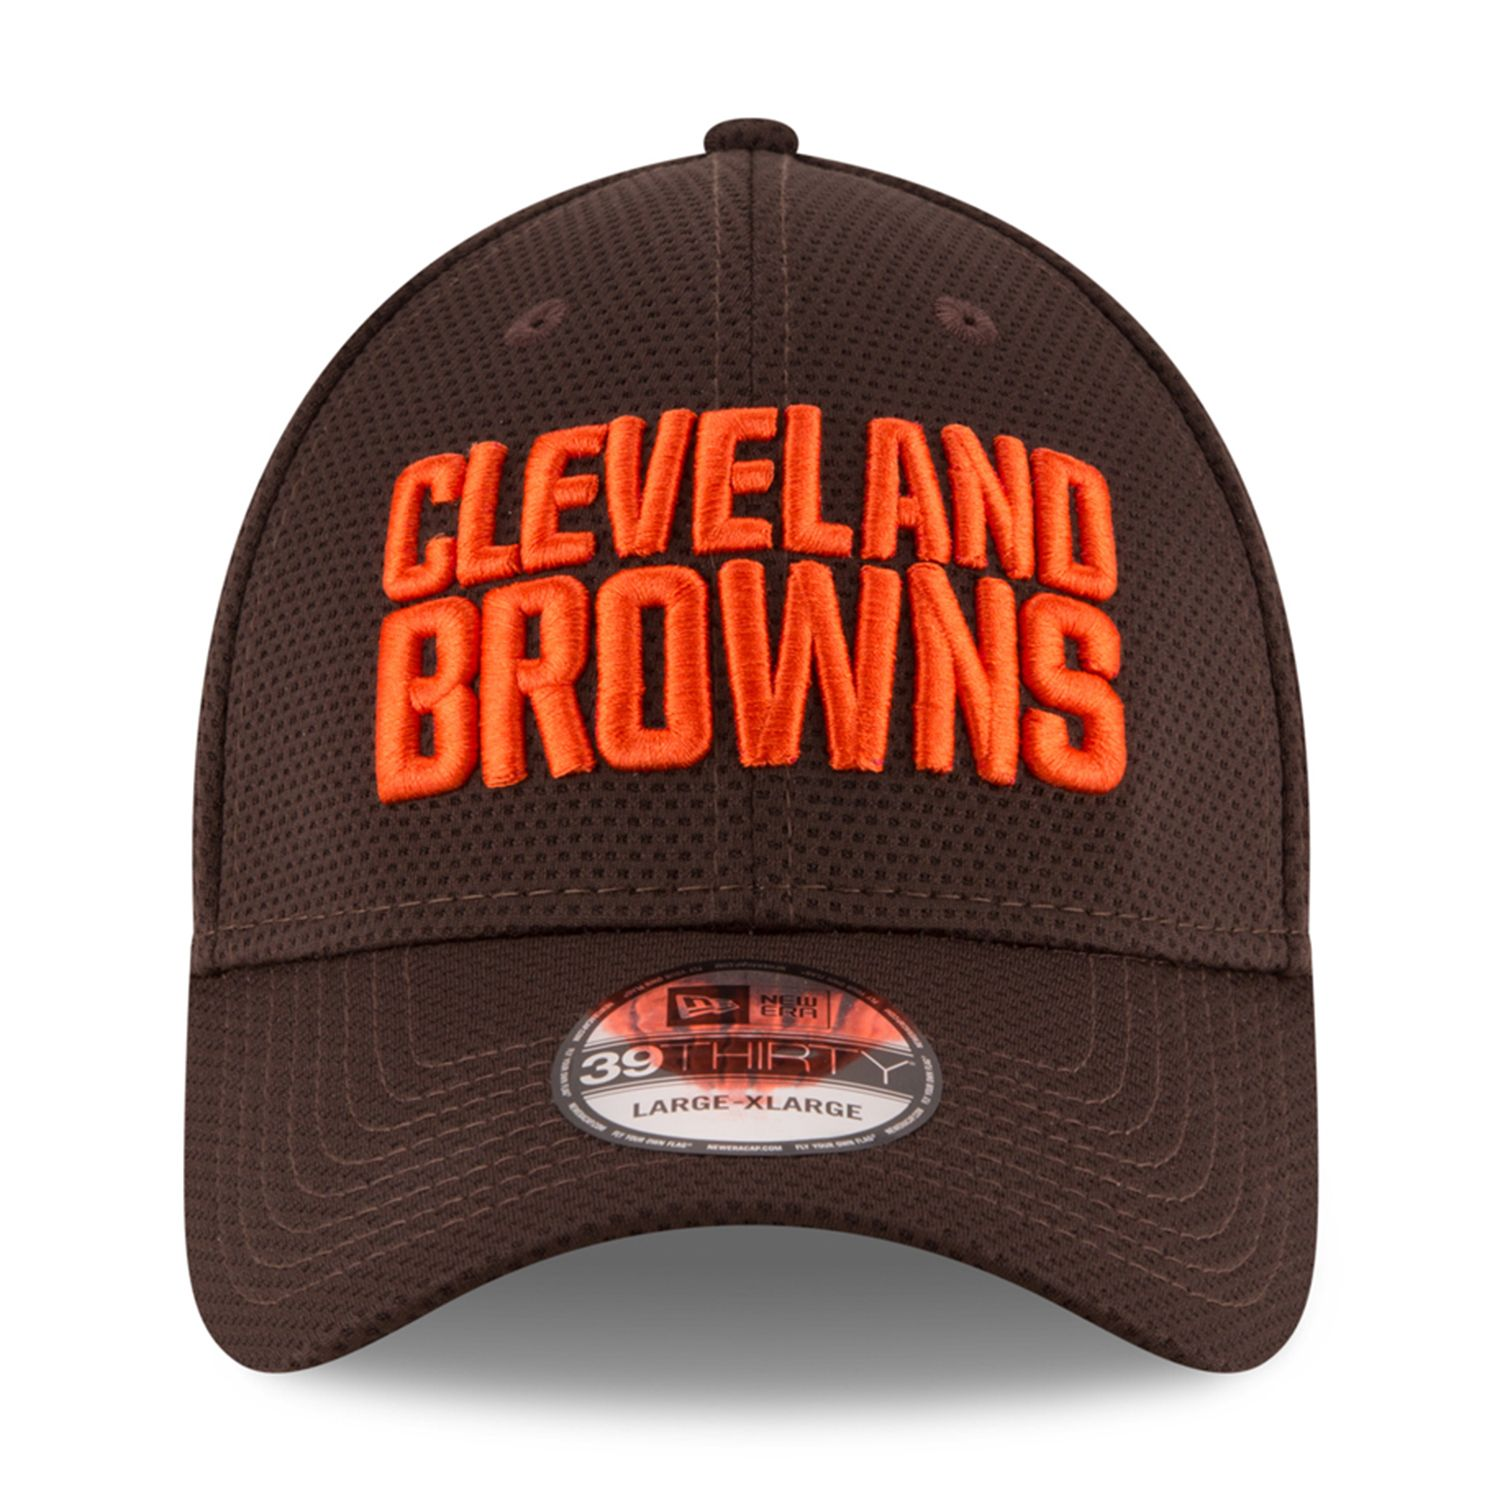 ... czech nfl cleveland browns sports fan hats kohls 95f7a 48cbf ae4dbe5f3